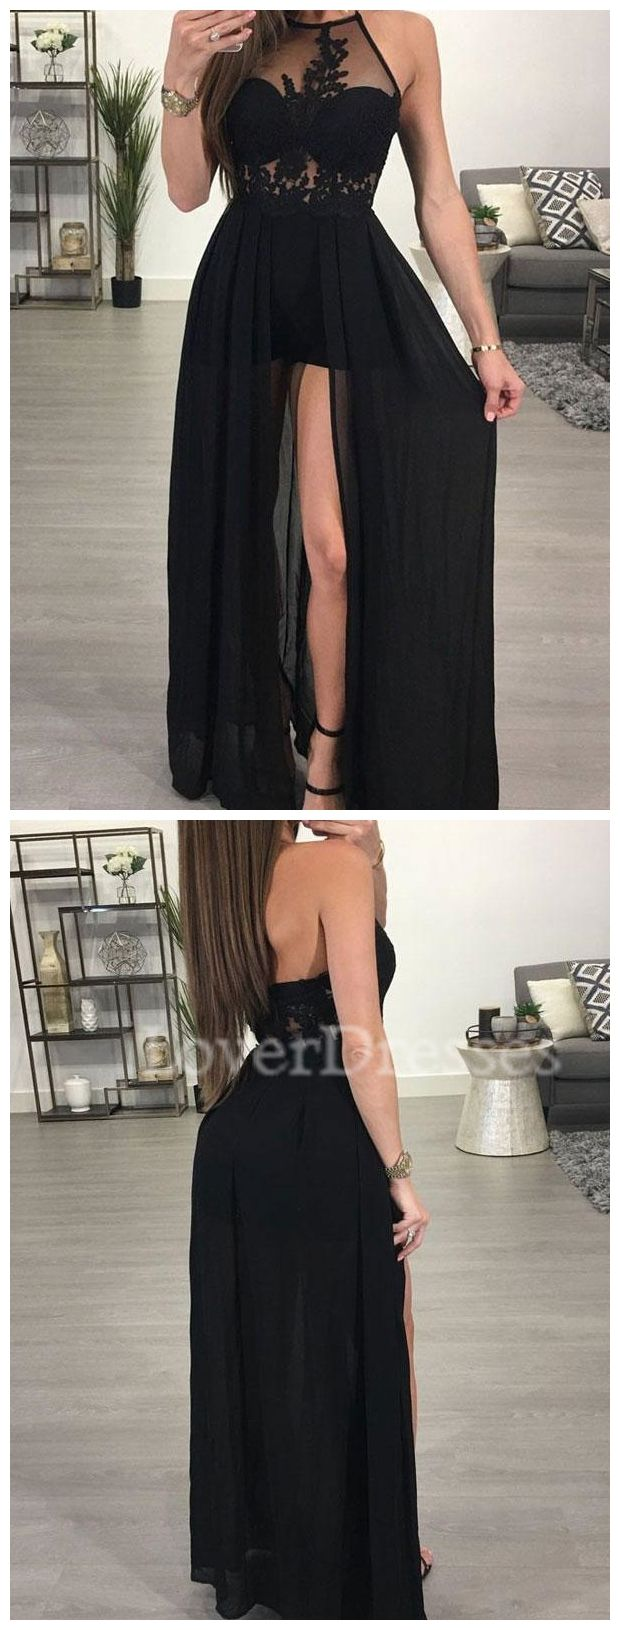 Sexy Black Lace See Through Evening Prom Dresses, Long Black Party Prom Dress, Custom Long Prom Dresses, Cheap Formal Prom Dresses, 17055